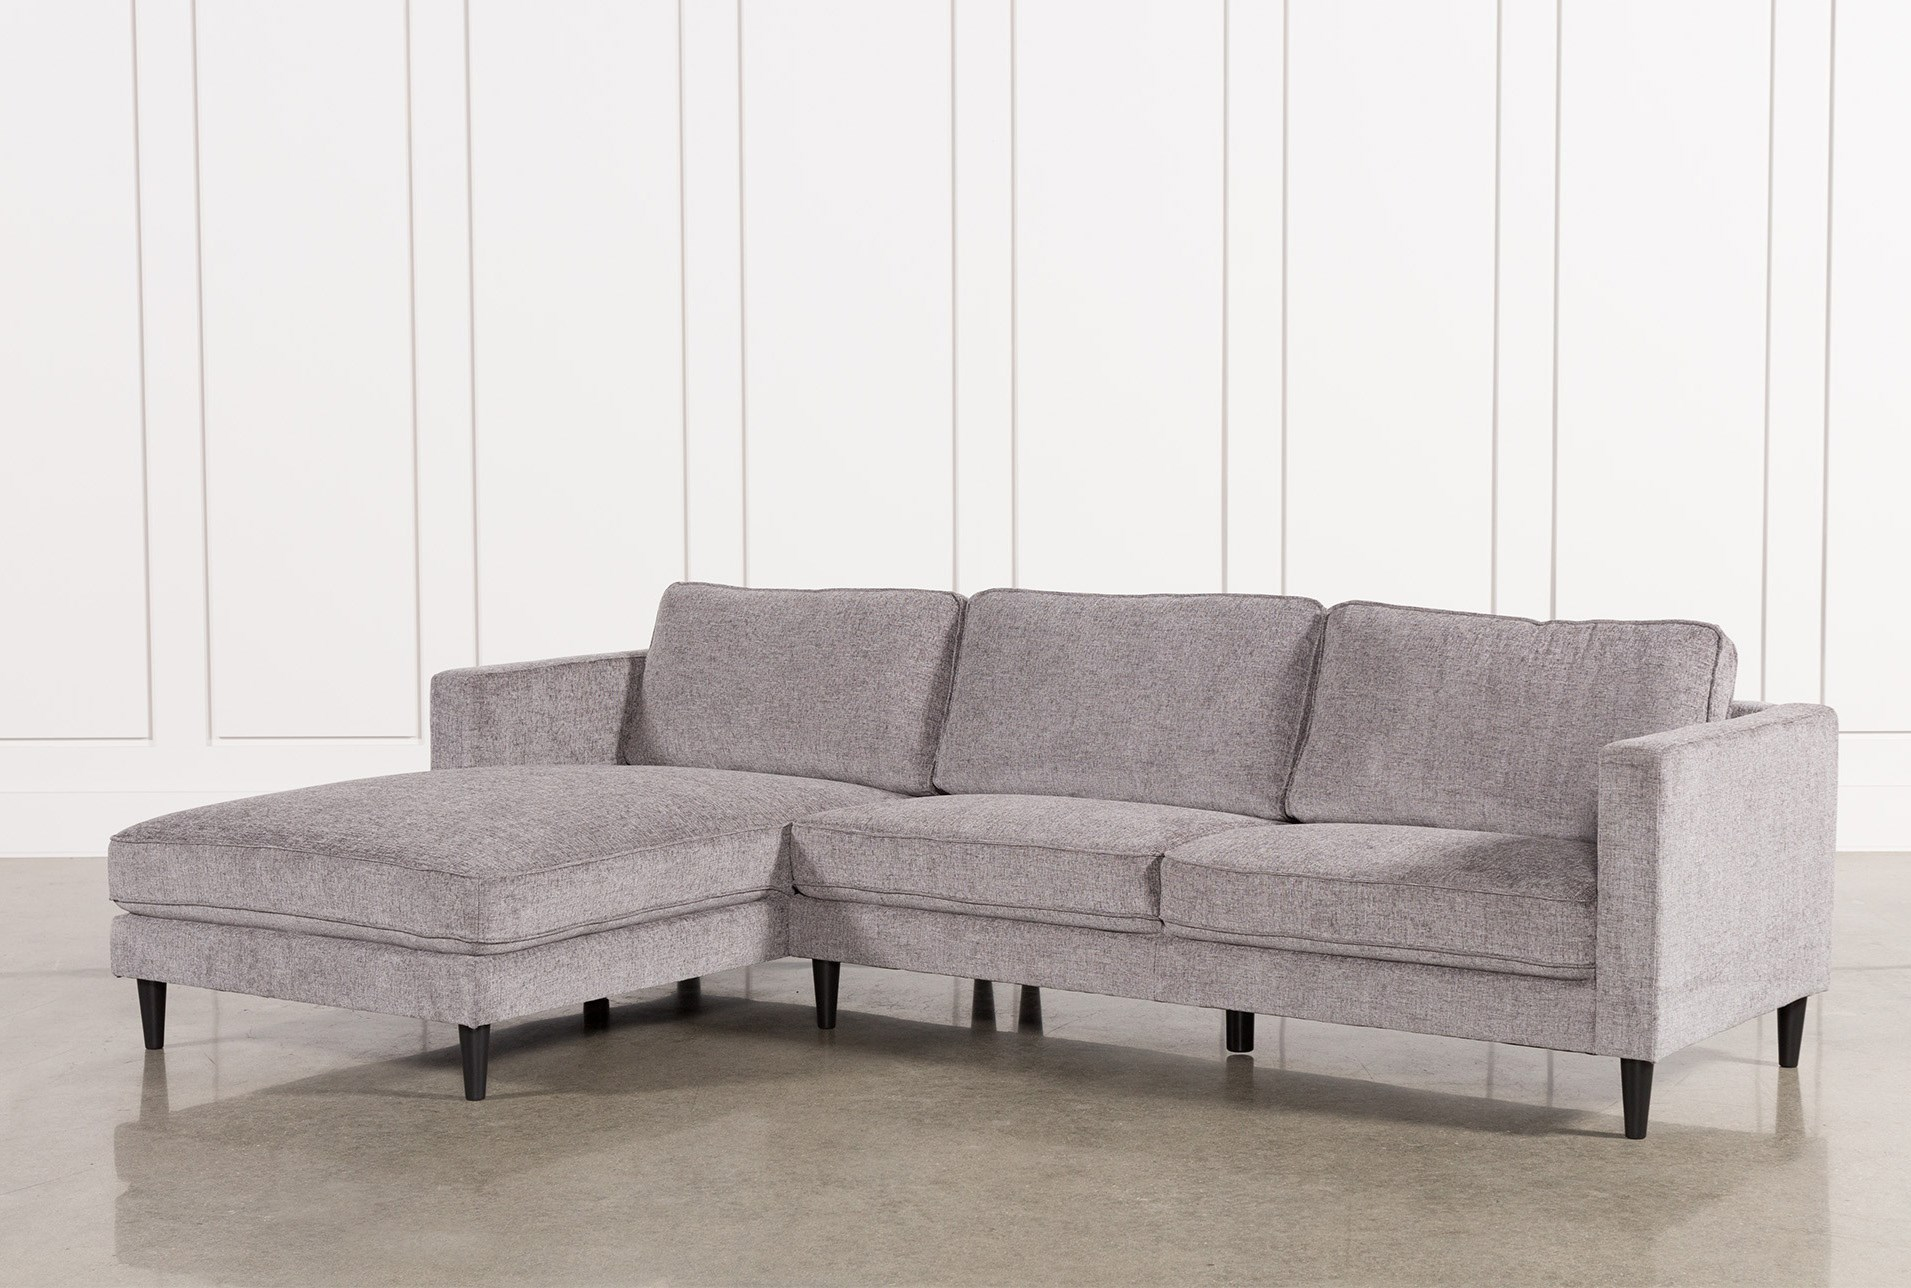 sectional wither leather grey net under canada gray sofa catosfera com sofas toronto light ikea gradschoolfairs